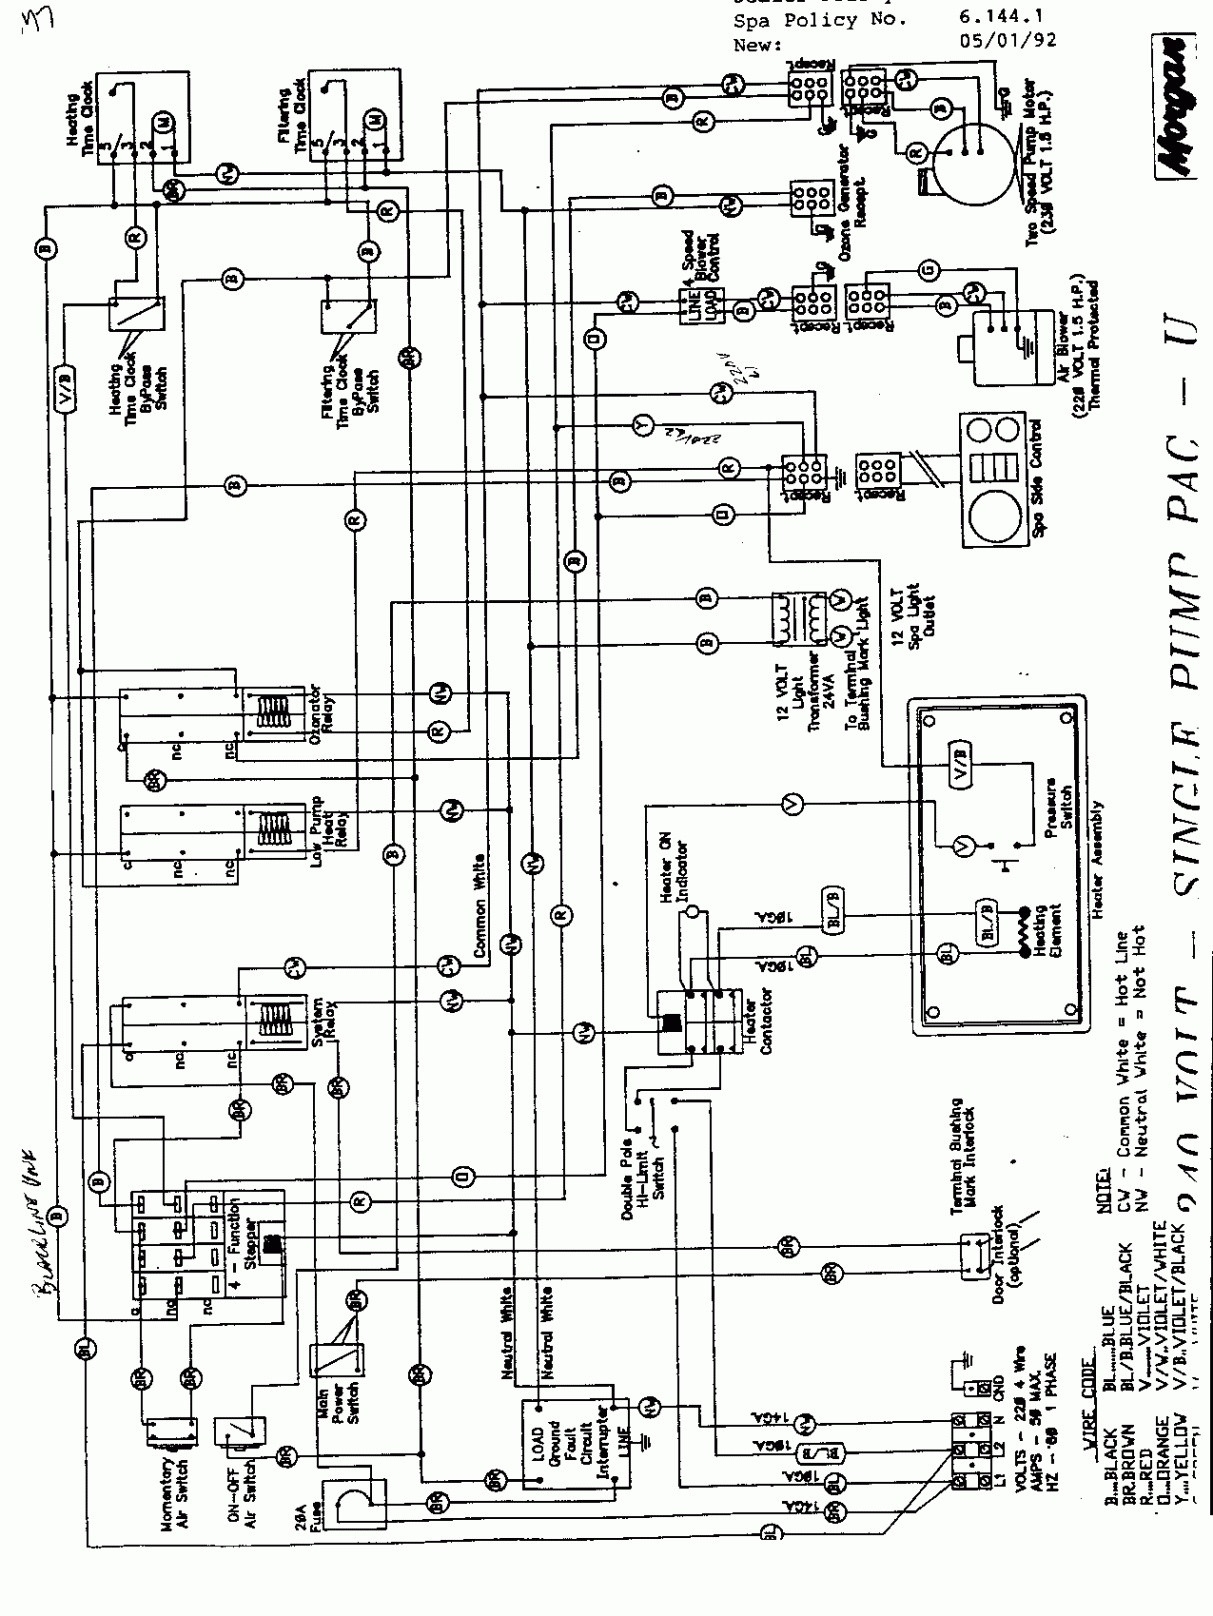 hot tub motor wiring diagram